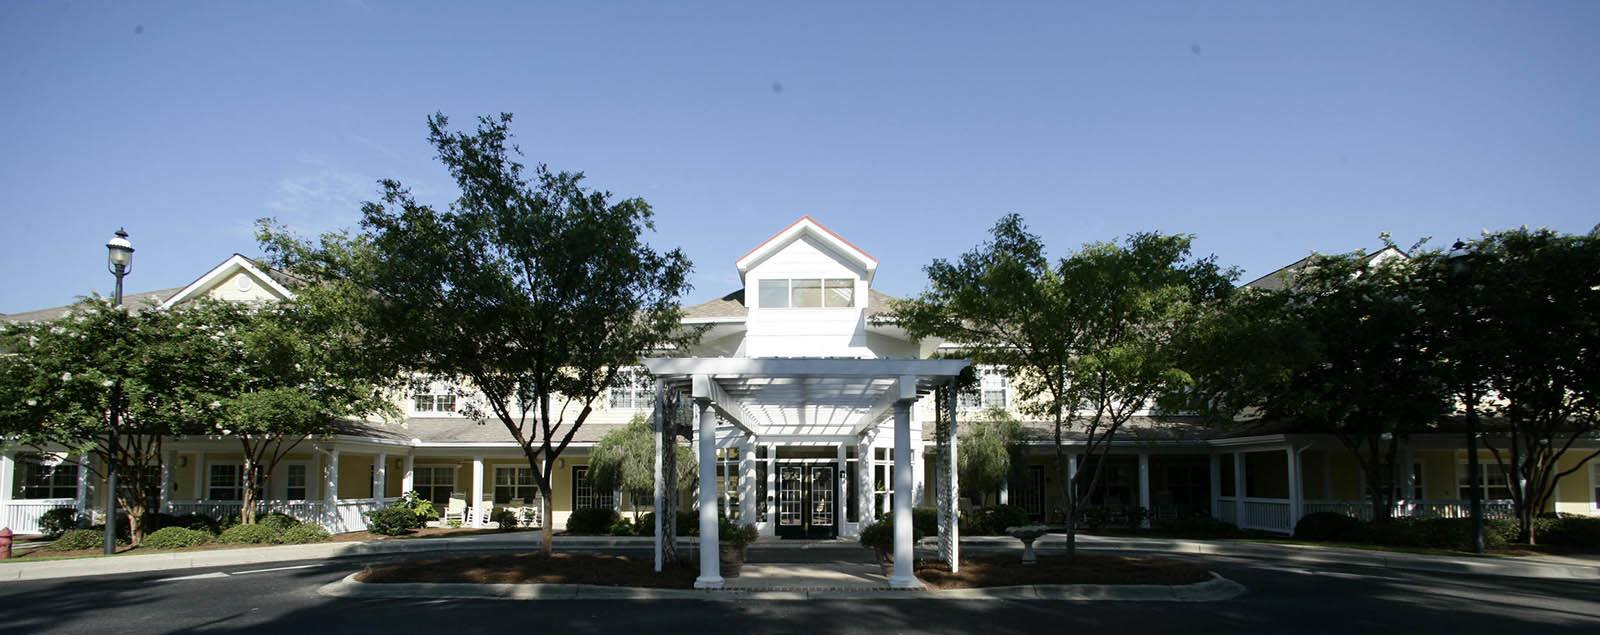 Levels of Senior Living care at senior living in Tallahassee